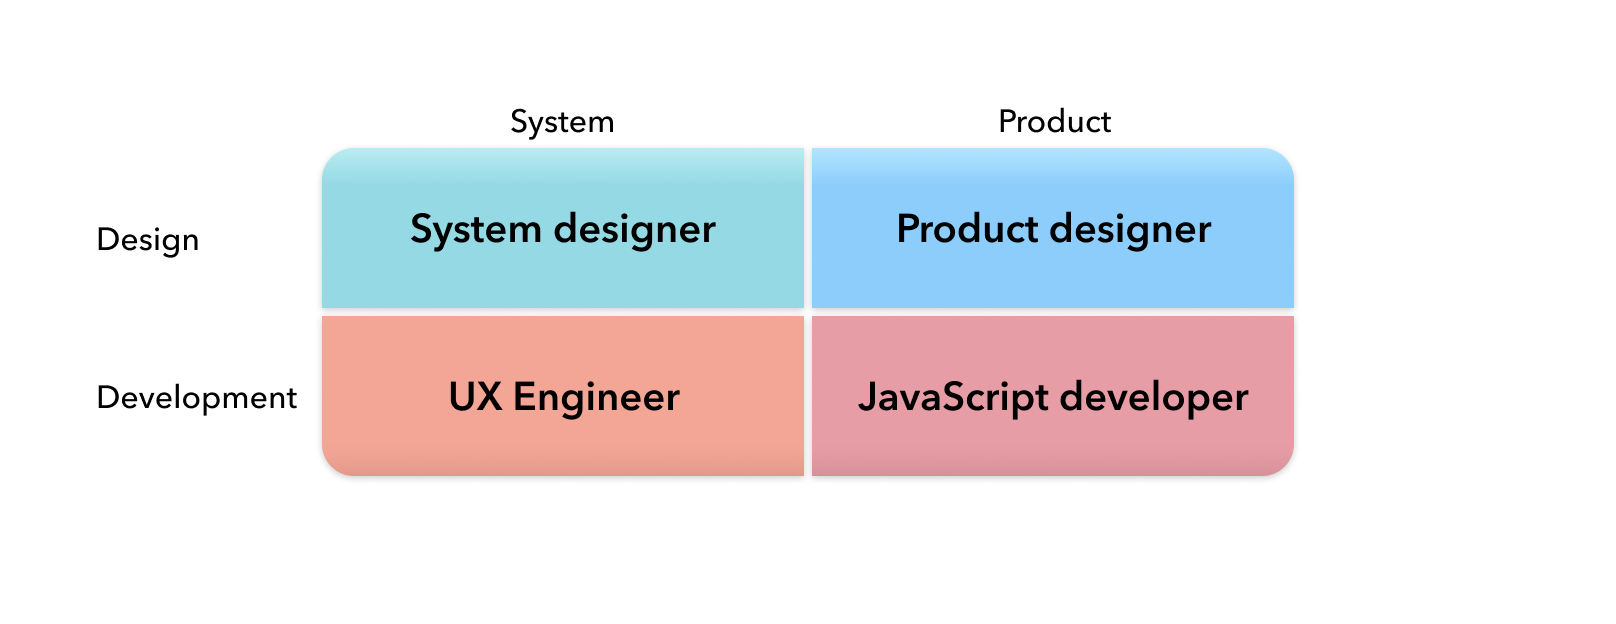 Summary of the model: System/Product and Design/Development